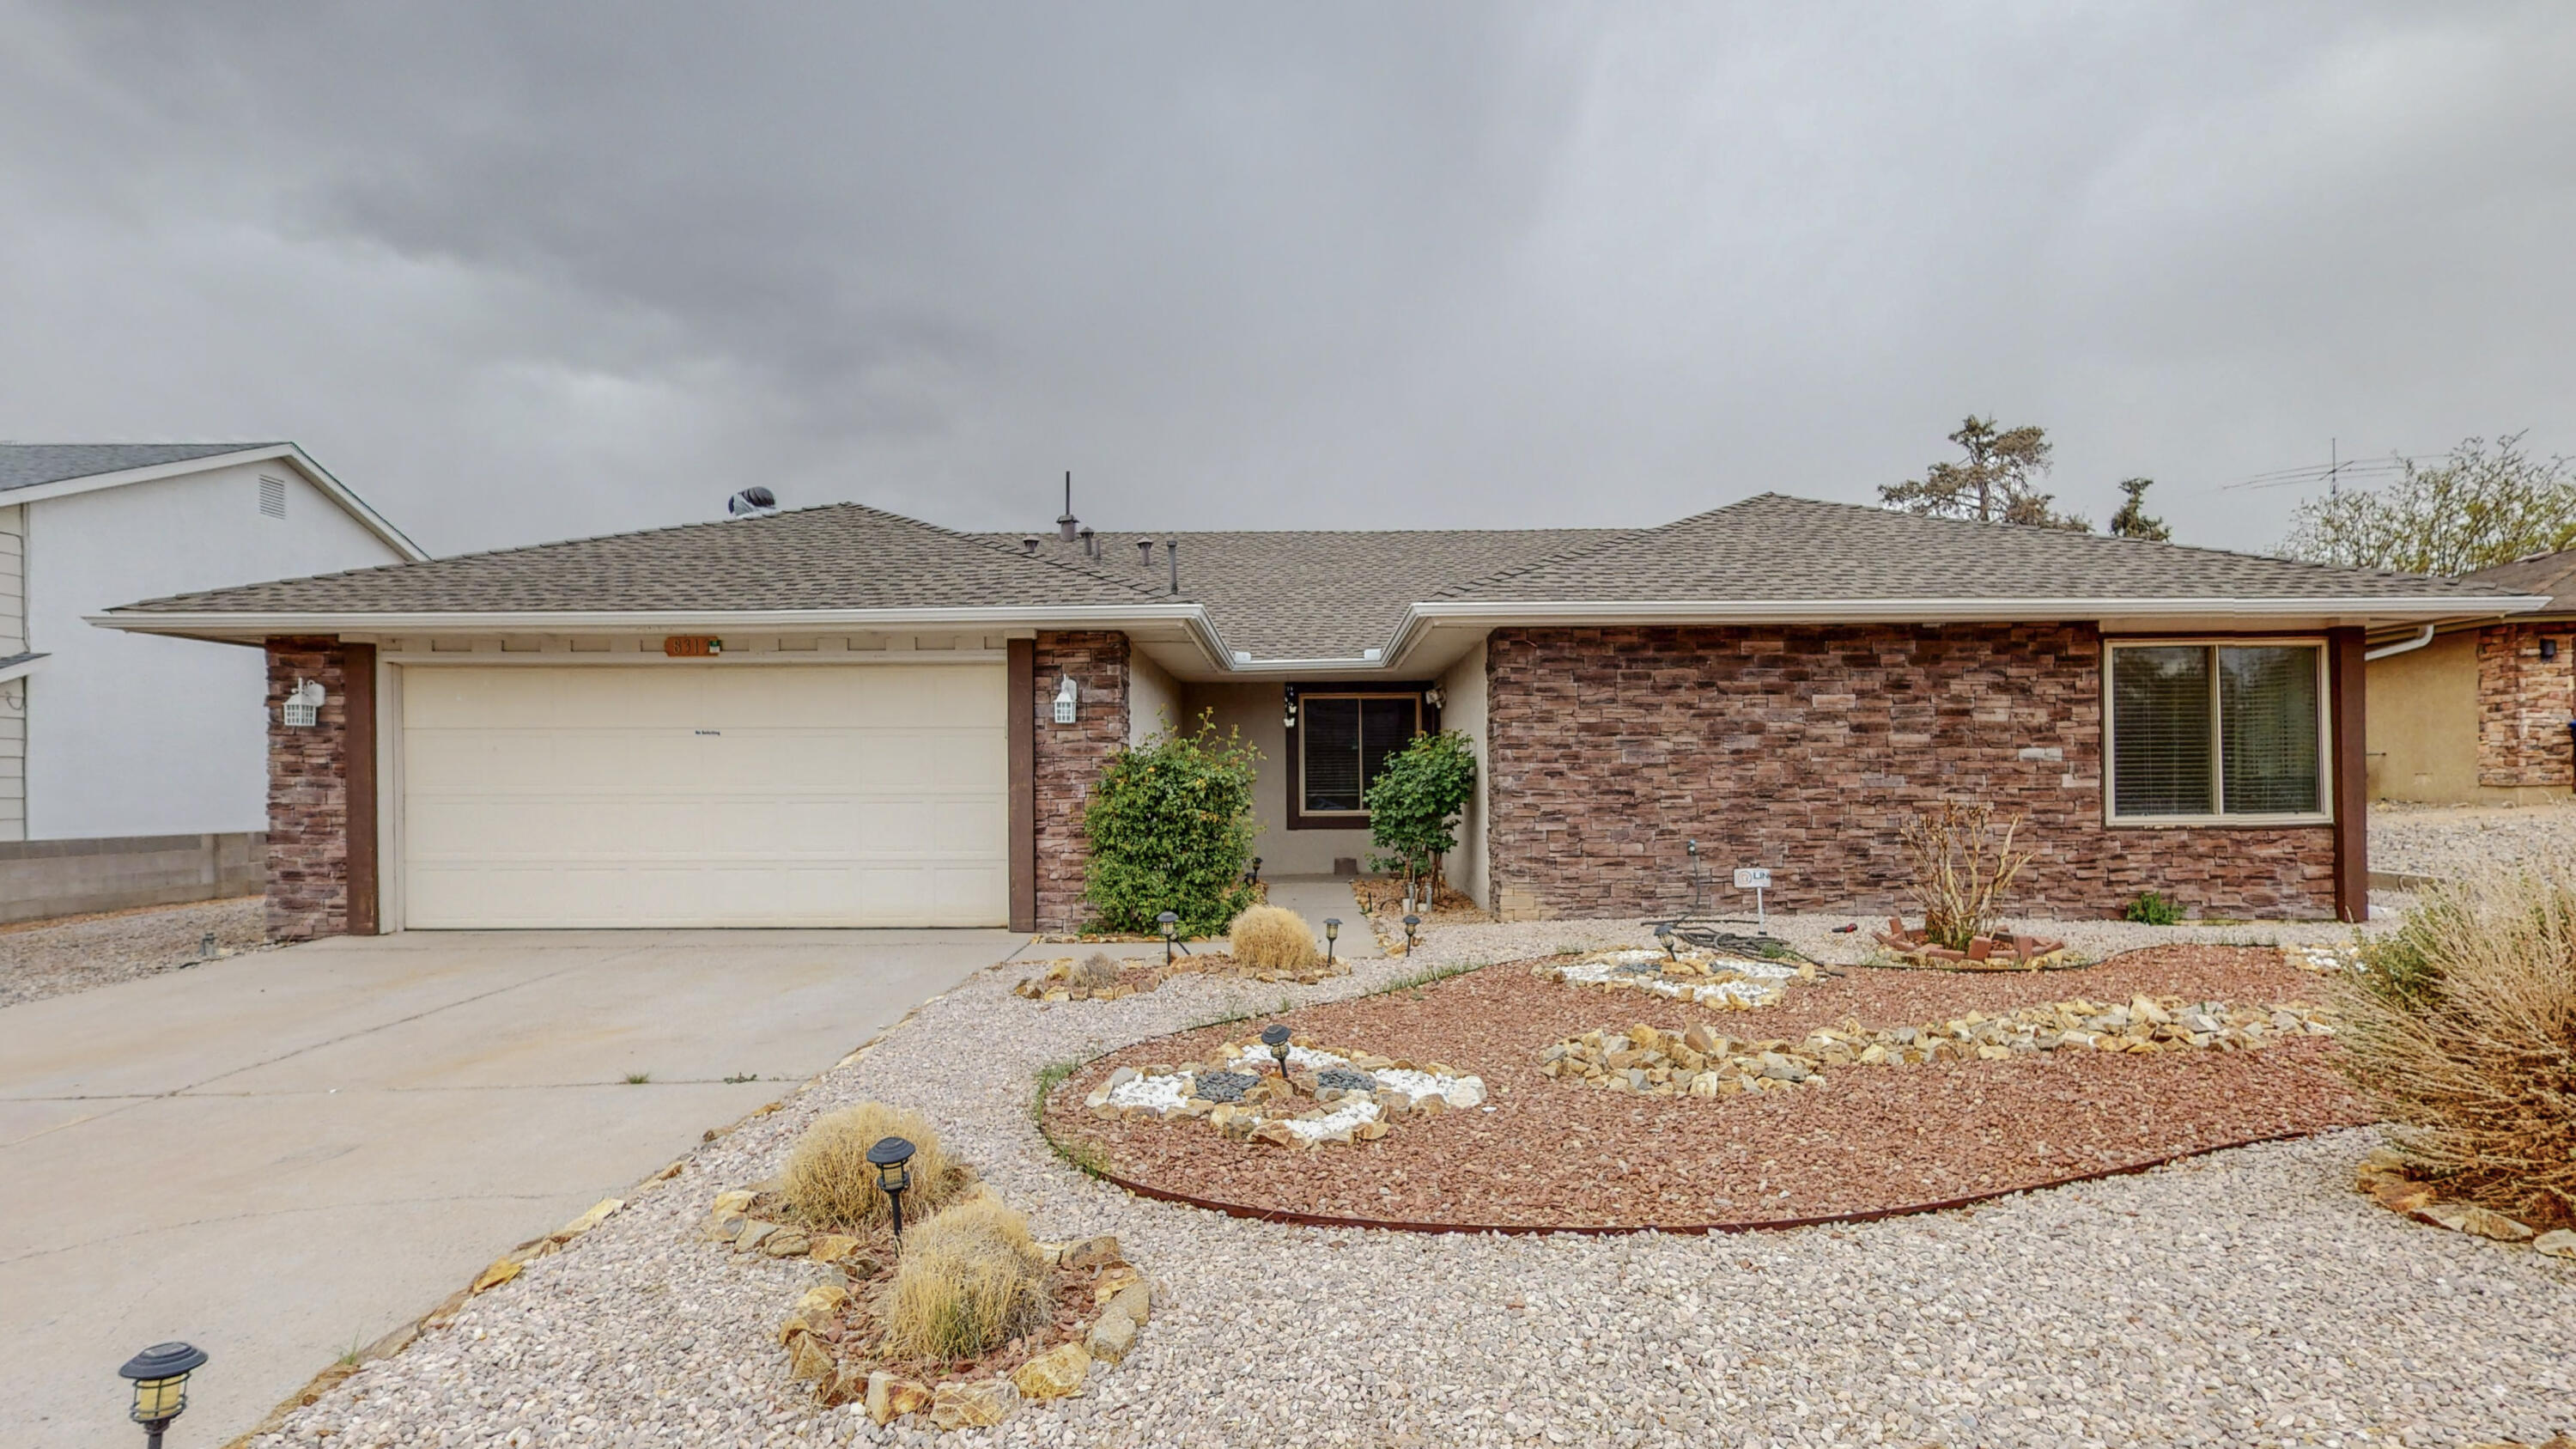 INCREDIBLE FIND! This is the ONE you have been DREAMING about! One Story? Check! La Cueva District? Check! Backyard Access w/RV Parking? Check! Private Cul-De-Sac? Check! This GORGEOUS Home boasts of Not 1, but 2 Living Areas, PLUS an additional Bonus/Office/Possible Bedroom, Open Floor Plan w/Gourmet Chef's Kitchen w/Granite Countertops & Pantry, Stone Accents throughout the Home, Ceiling Fans, Primary Suite w/Extended Vanity Area w/Mirrored Walk in Closet, Ref Air, Fully Landscaped & MORE! Entertain Friends & Fam at the Wet Bar then step Outside to the BBQ Ready Covered Patio in your Private & Spacious Landscaped Yard. Conveniently located near NE Heights Shopping, Popular Local Eats, Picturesque Parks & MORE! NOW is your Chance to live in Loma Del Norte! Call today for a Private Tour!